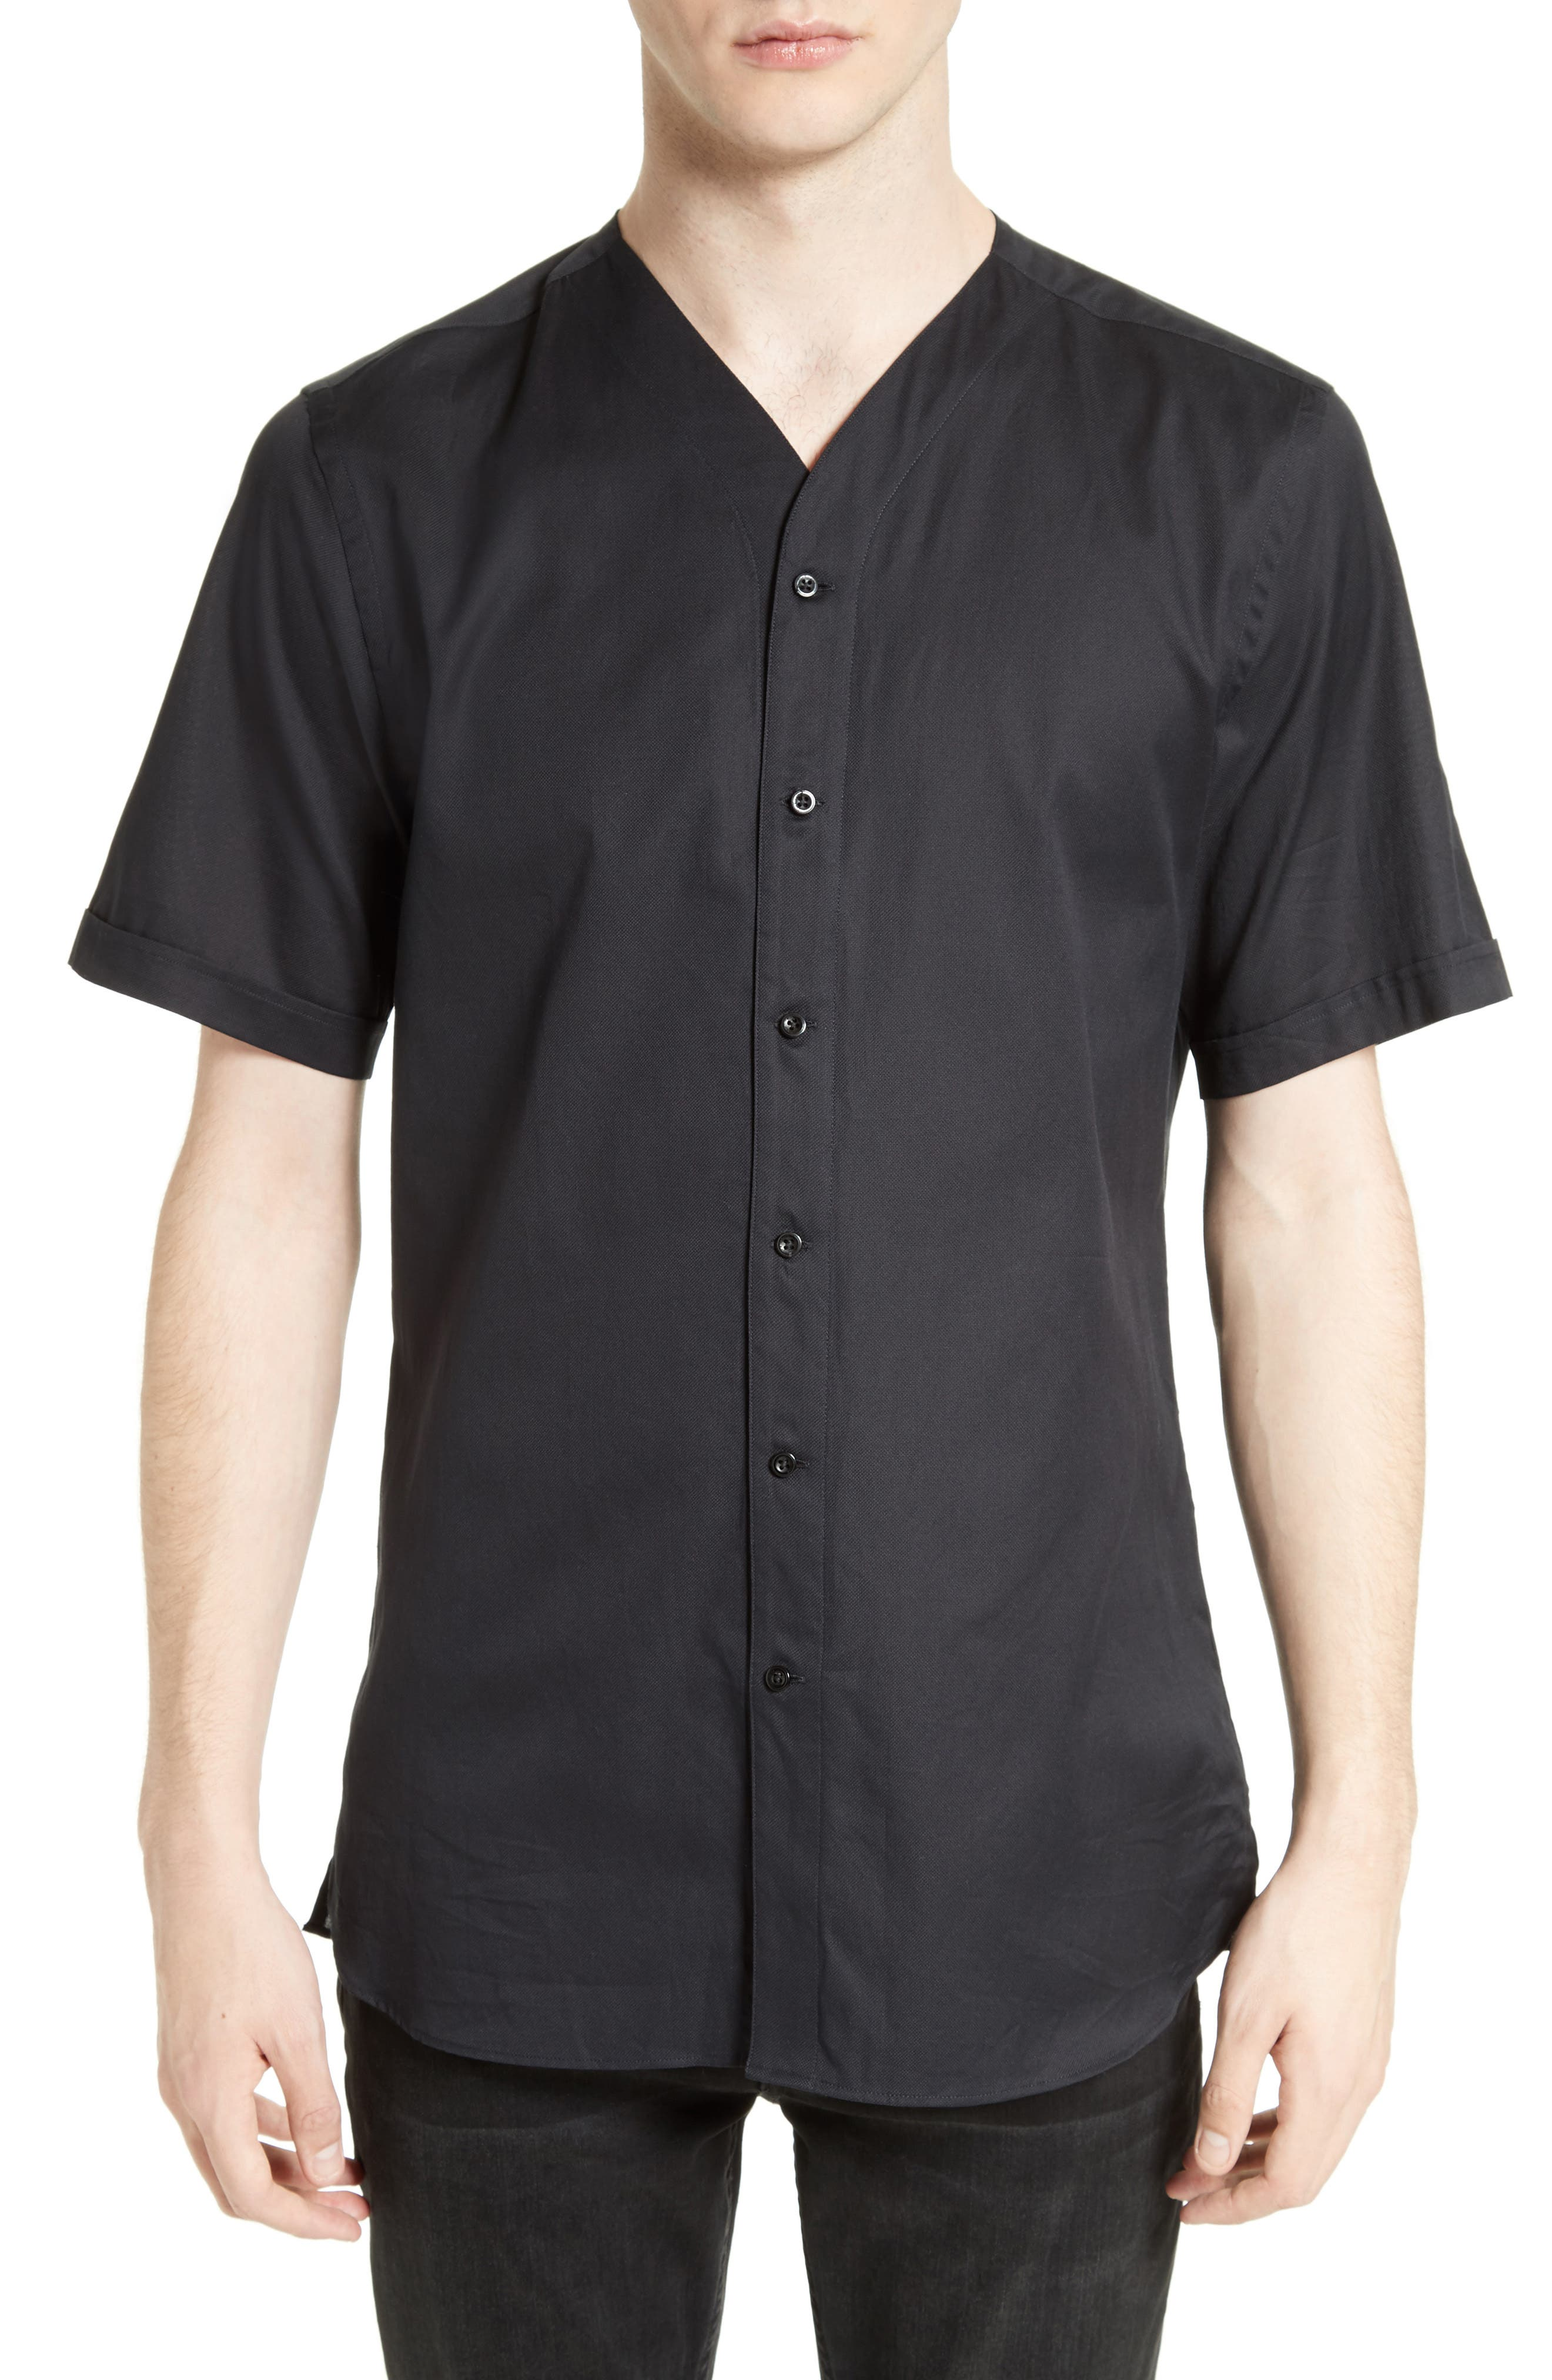 Alternate Image 1 Selected - The Kooples Classic Cotton Woven V-Neck Shirt